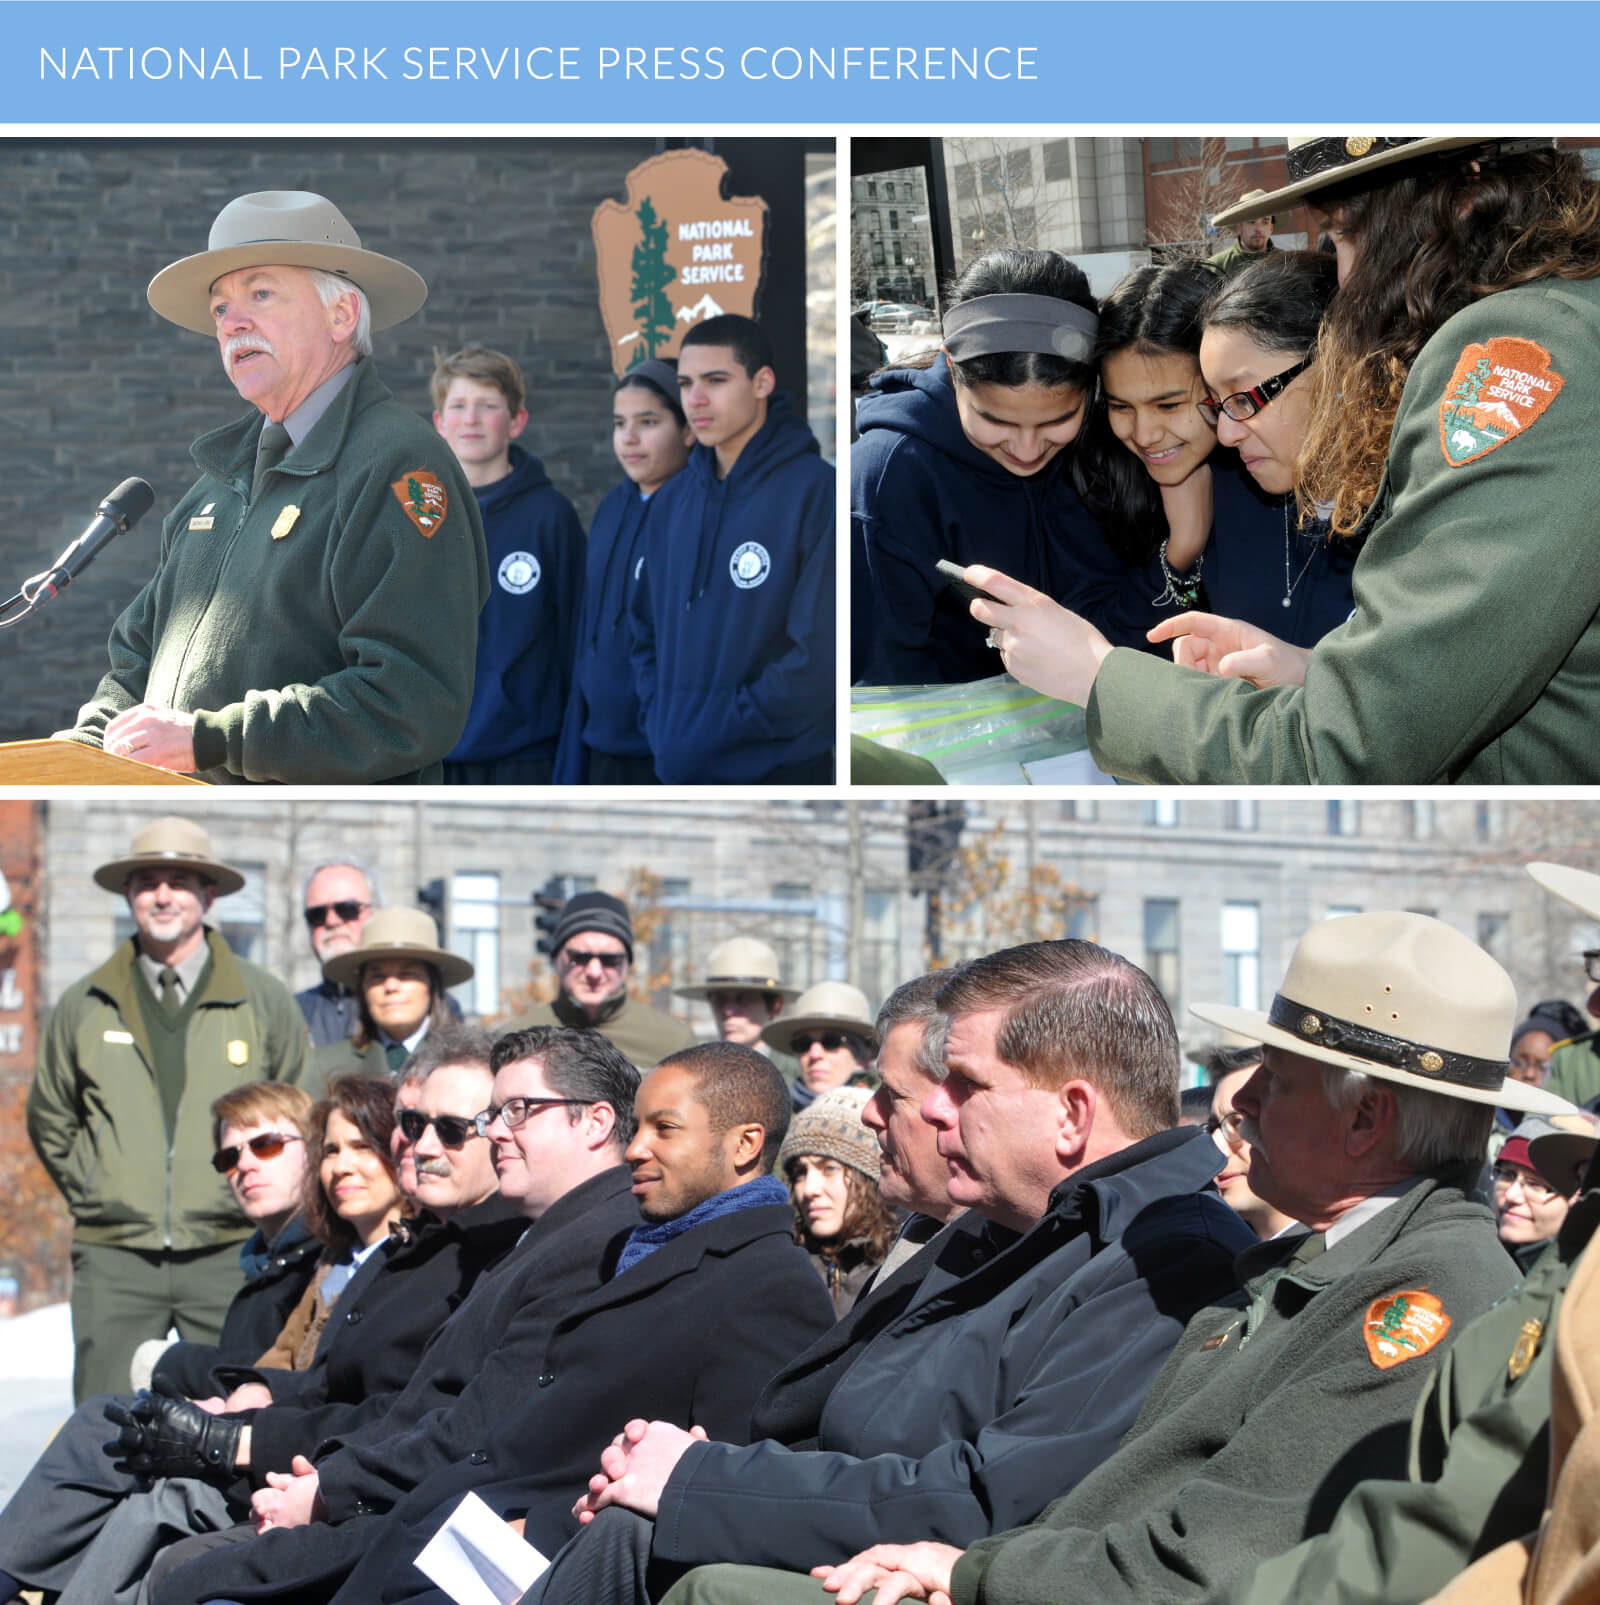 NPS Press Conference